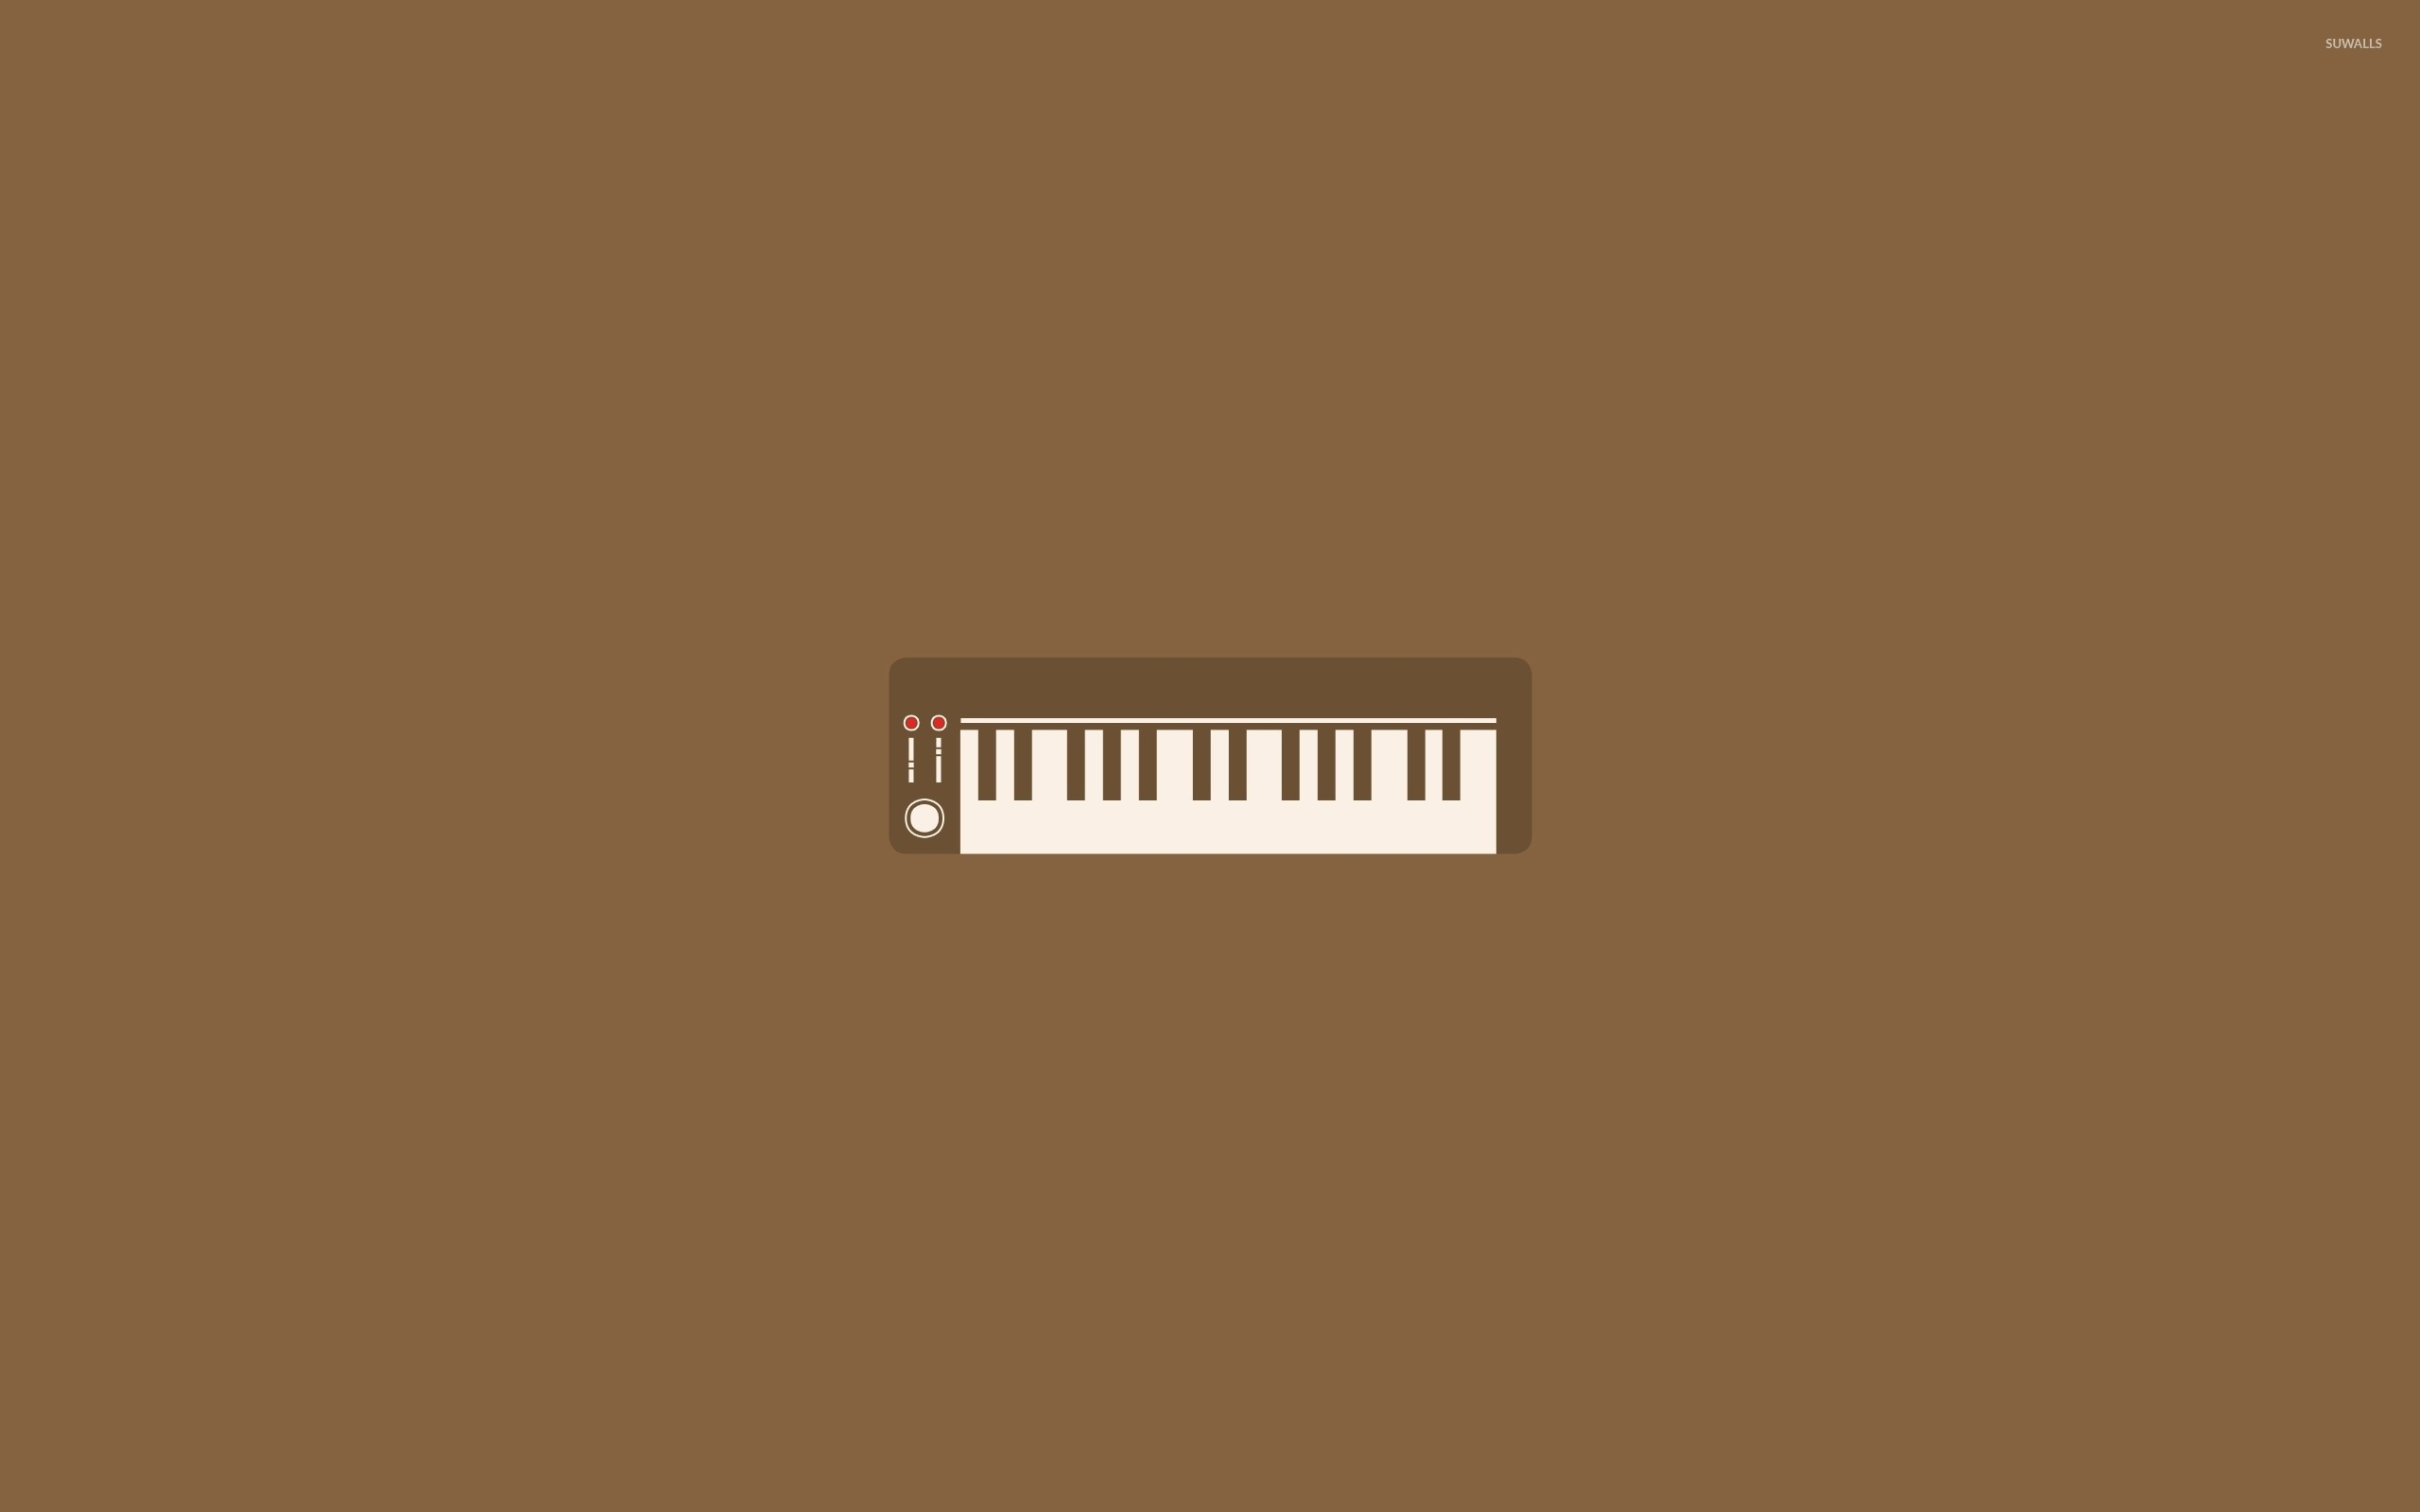 2560x1600 Electric piano wallpaper